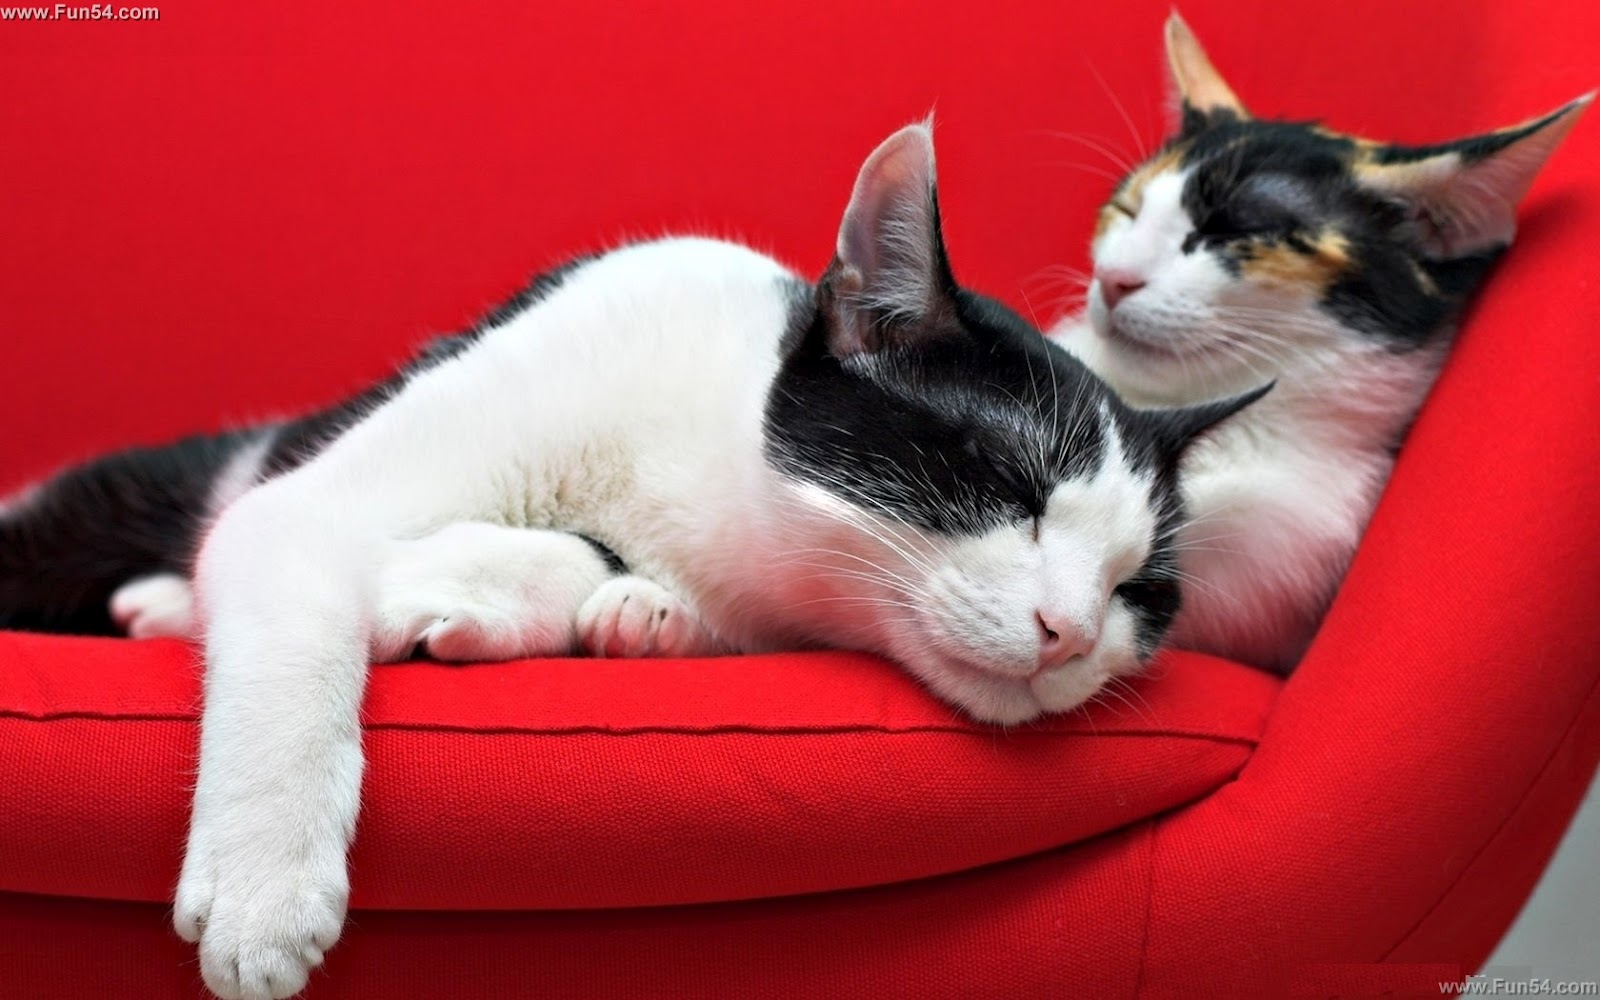 http://3.bp.blogspot.com/-w8n9MS9F9WU/T-3CW6PxZ6I/AAAAAAAAA7I/yr8_w7VC3OM/s1600/Cute-Black-White-Home-Cats-Pair-Sleeping-Together-on-the-Sofa-Red-Background-Wallpaper.jpg